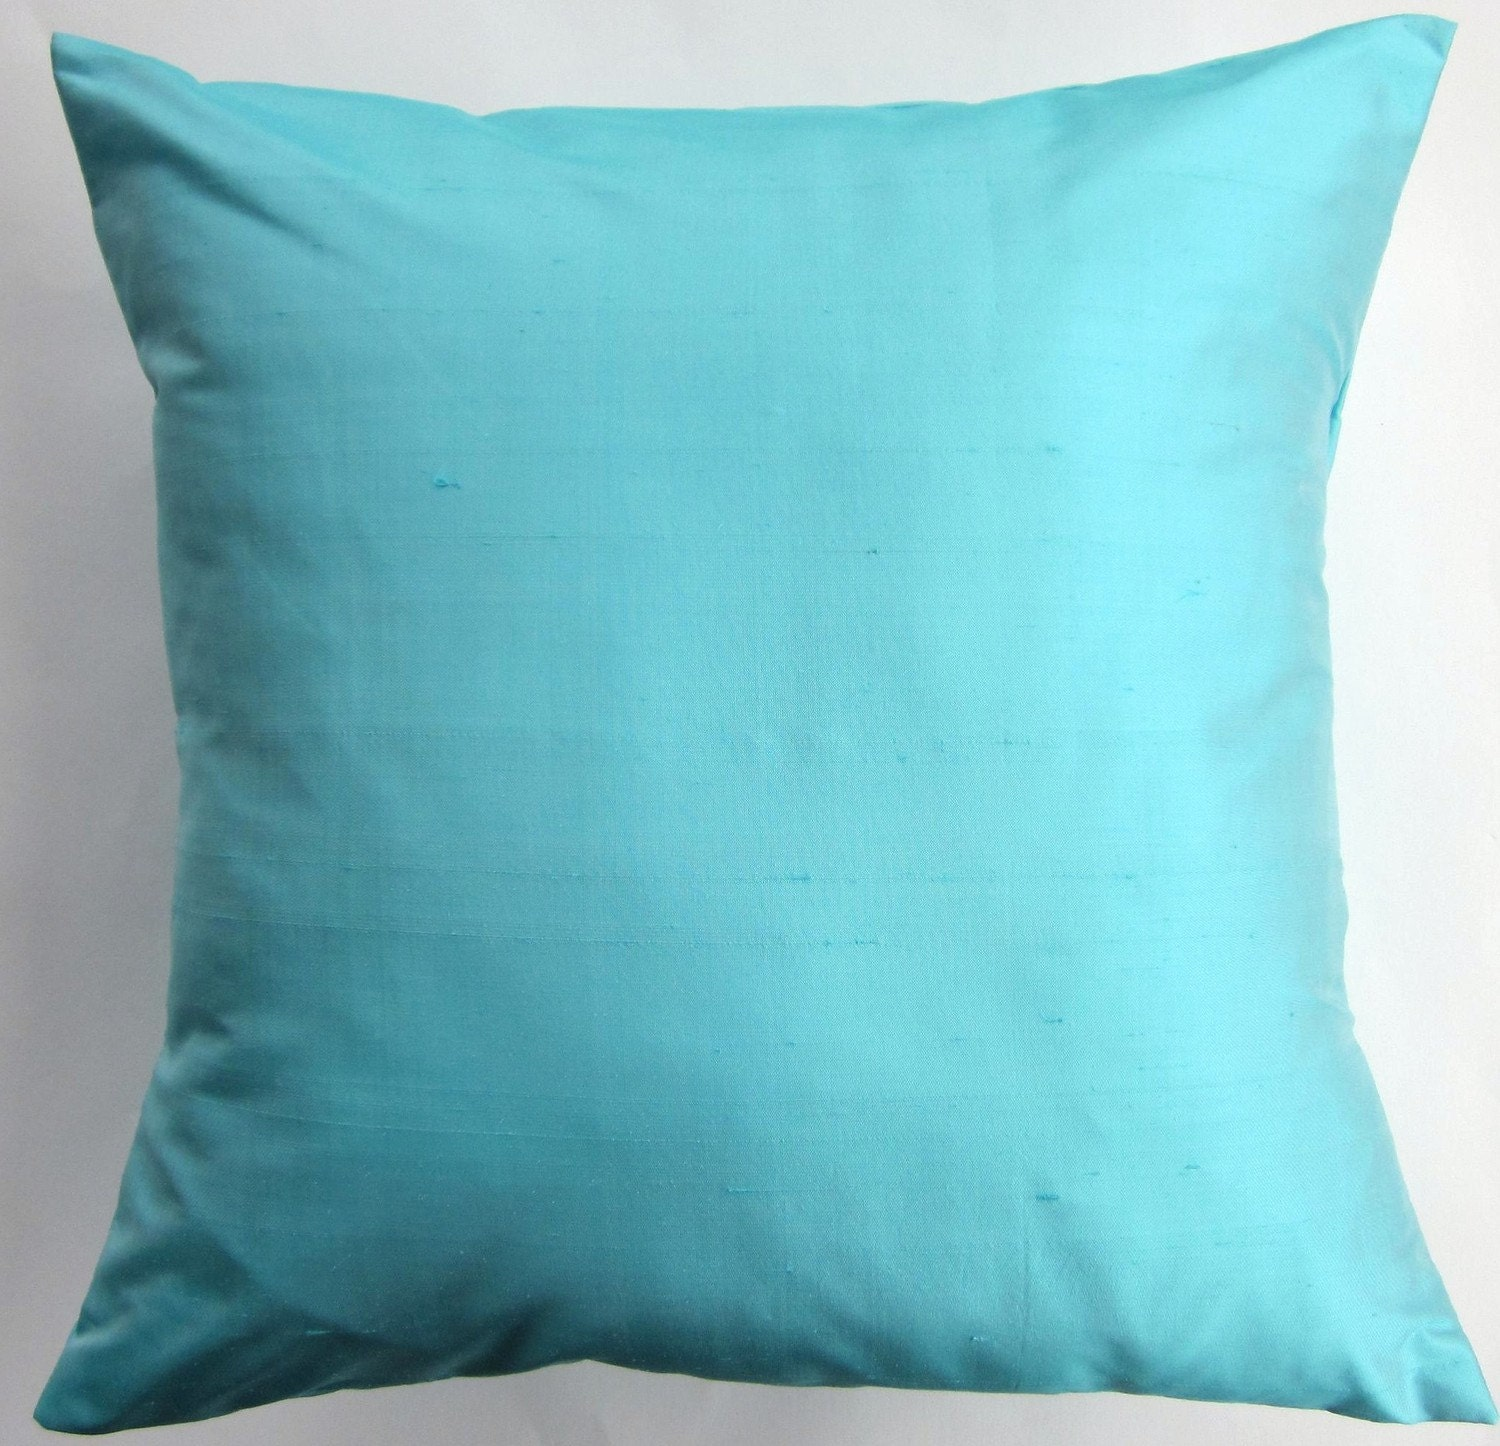 Throw Pillow Turquoise : Light Turquoise Silk Pillow Cover Aqua Throw Pillow Cover